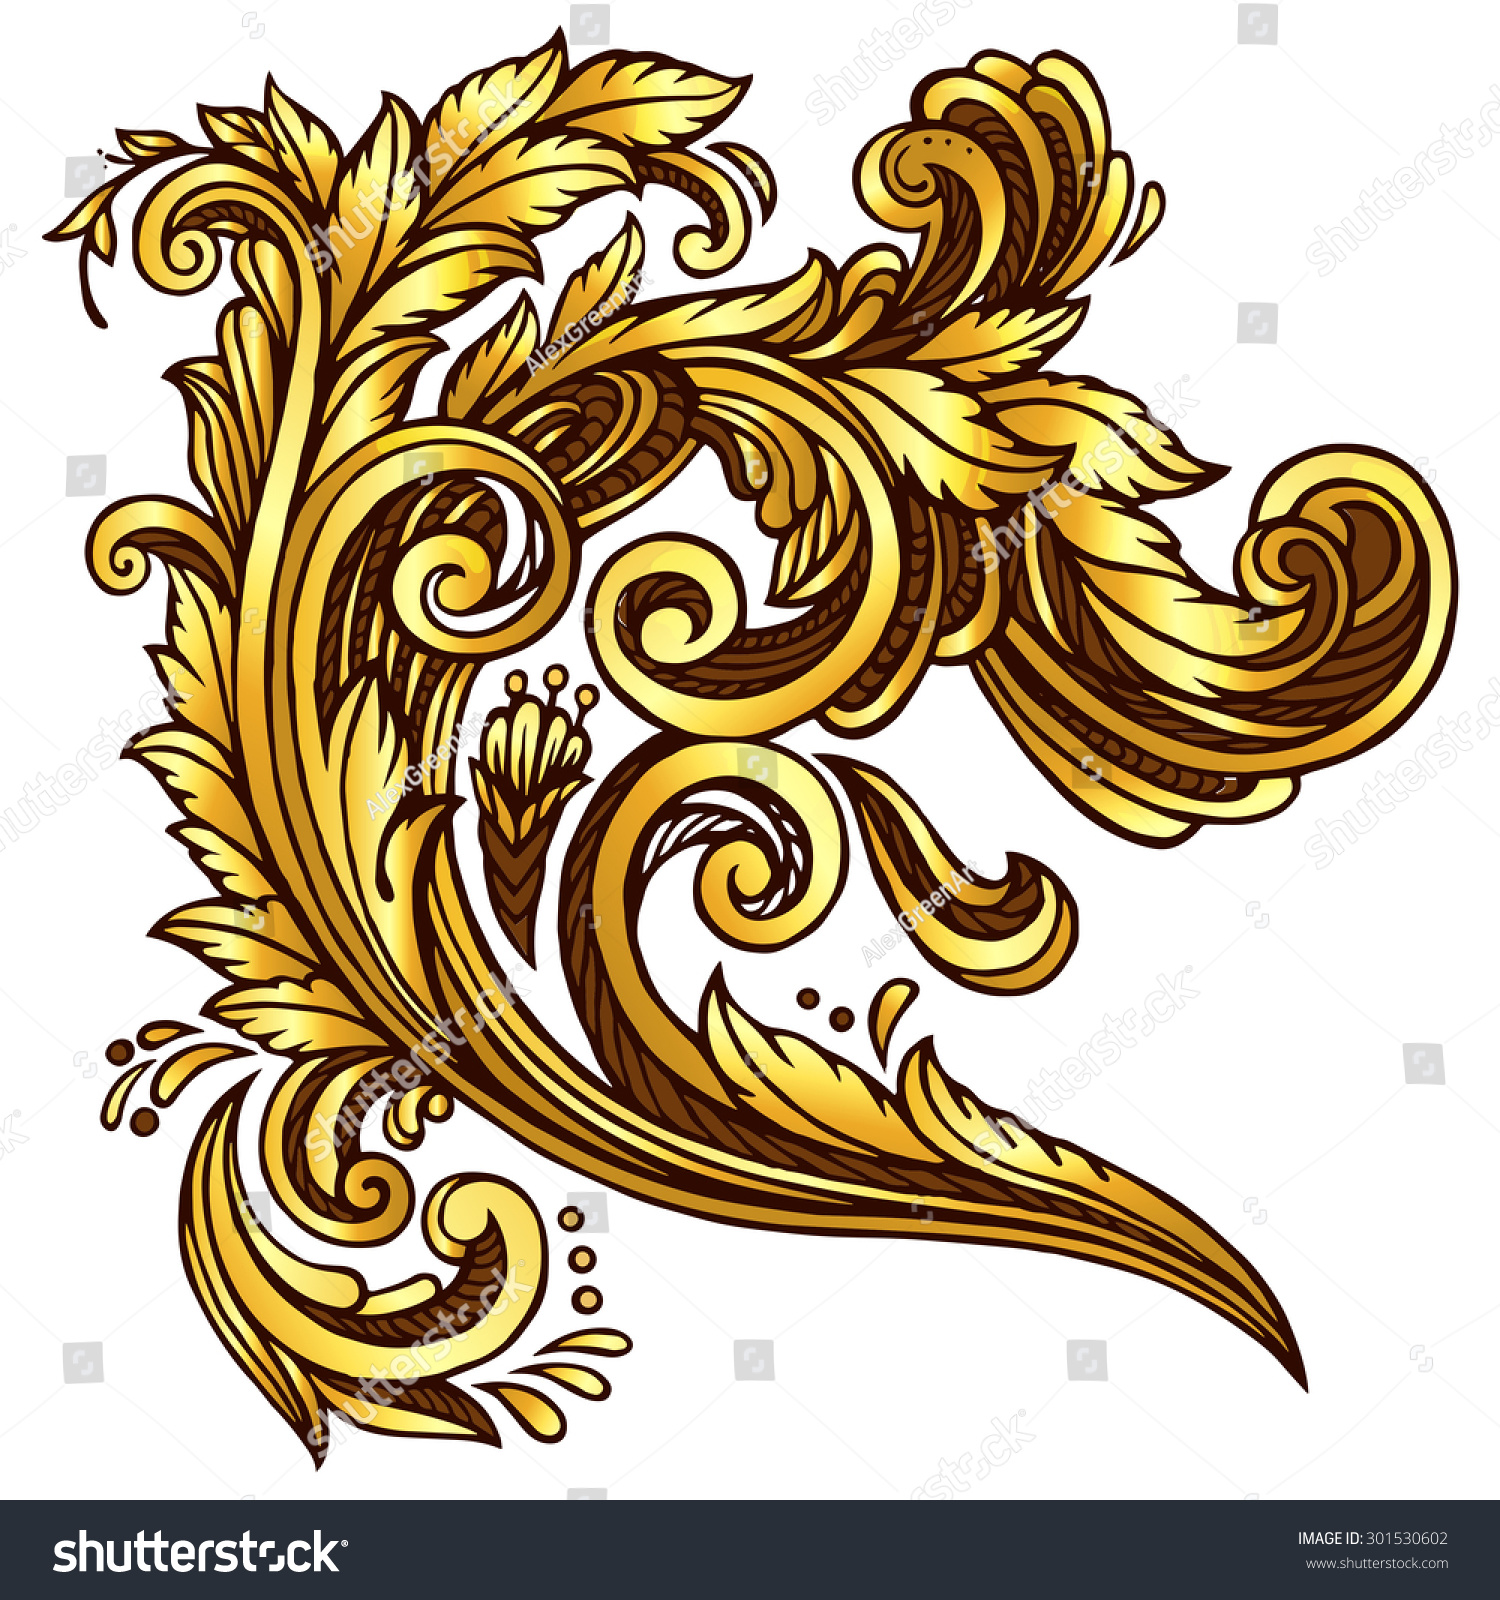 Golden baroque design element stock vector illustration for Baroque design elements